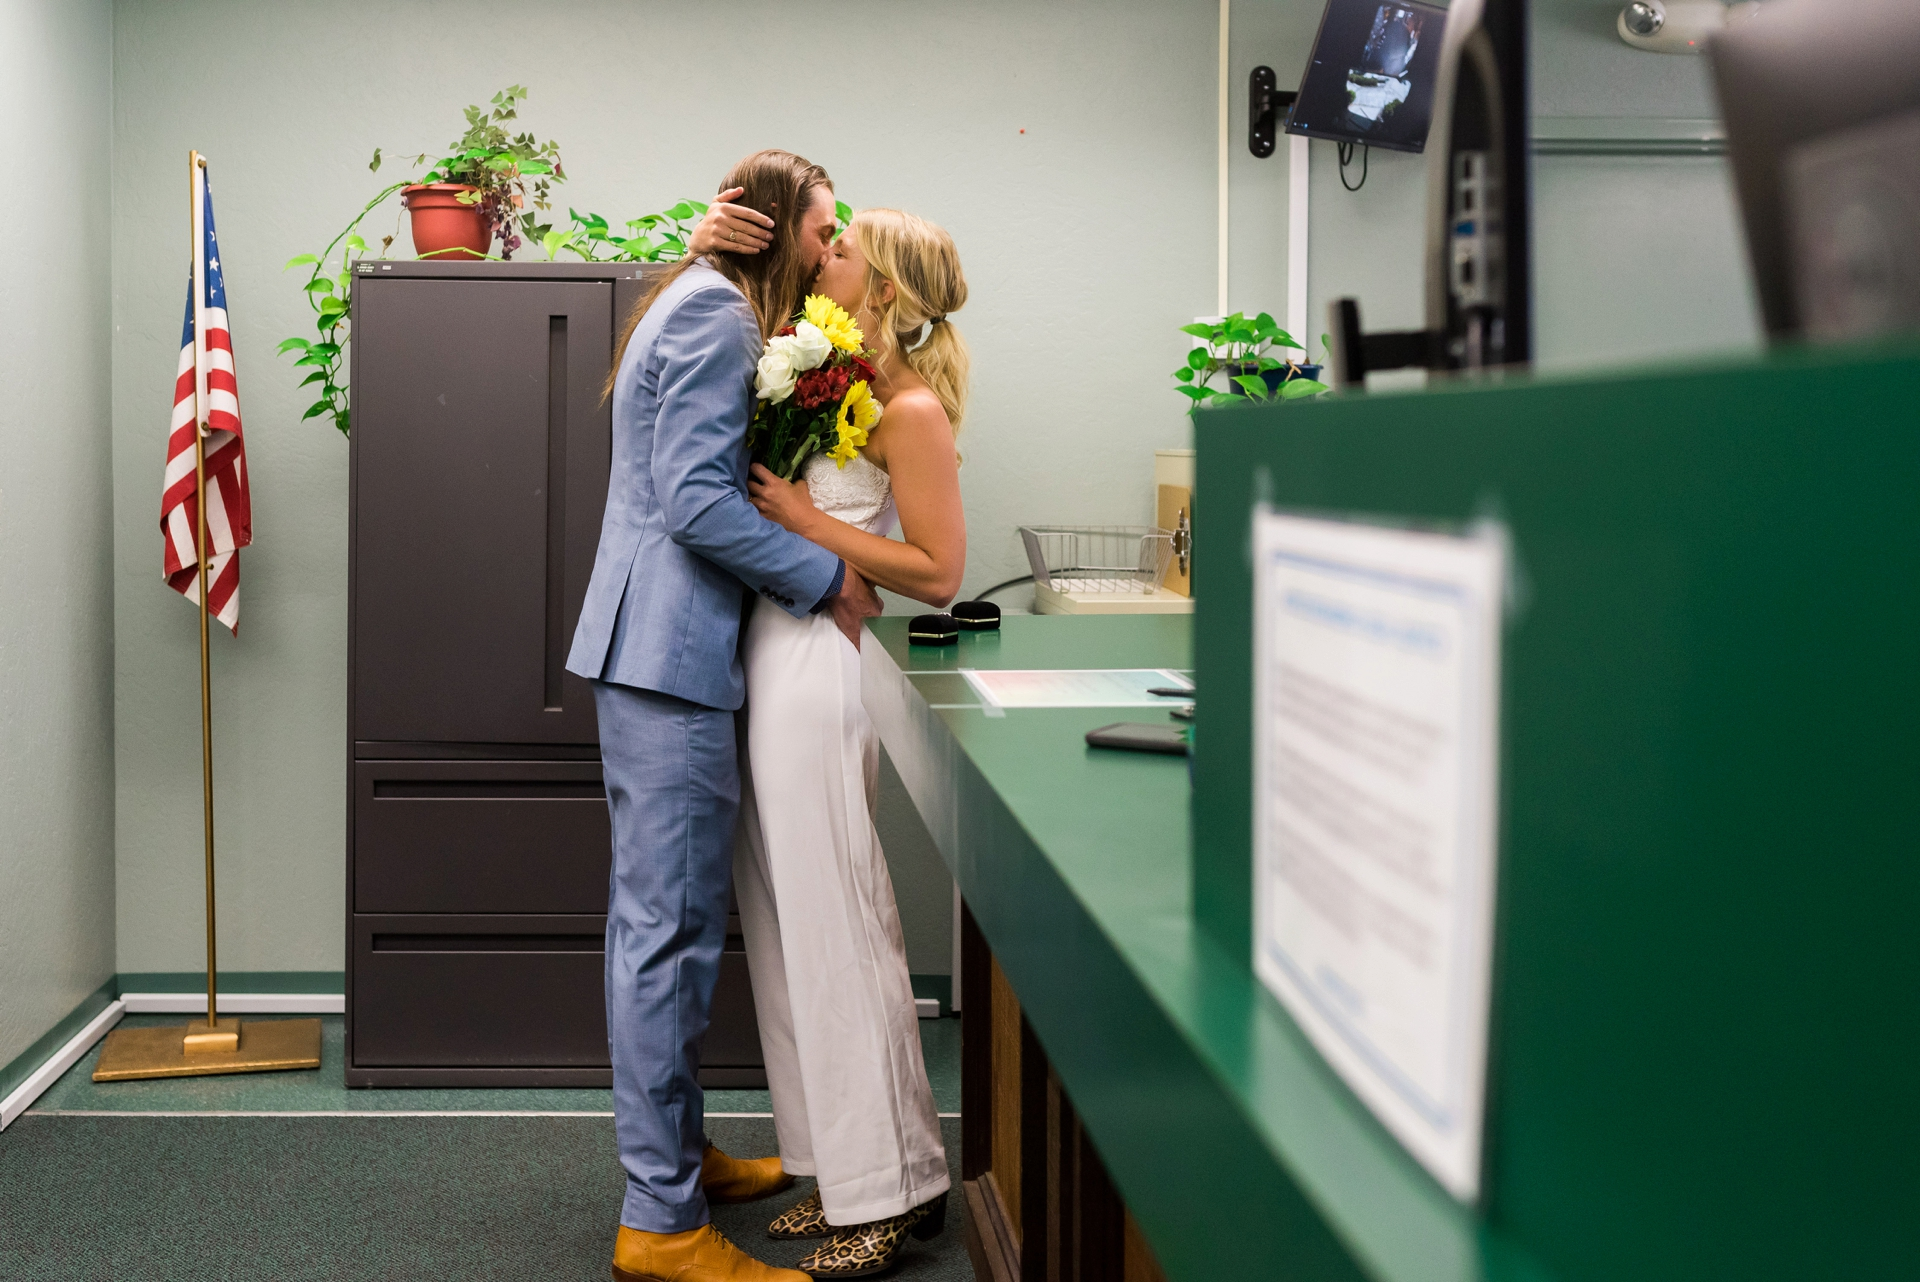 South Lake Tahoe County Clerk Office Ceremony Images | The couple seal their vows with a kiss